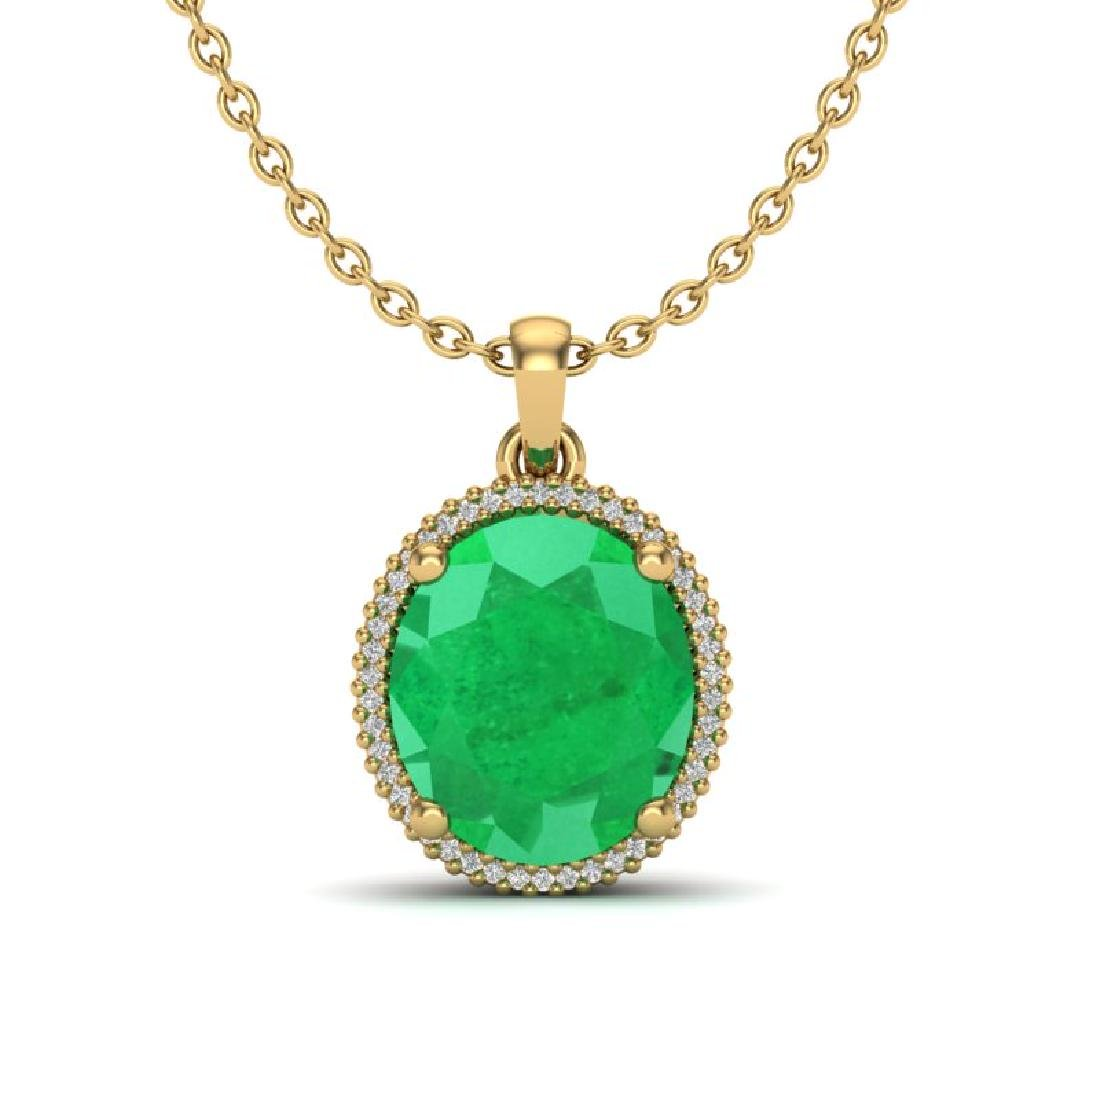 12 CTW Emerald & Micro Pave VS/SI Diamond Halo Necklace